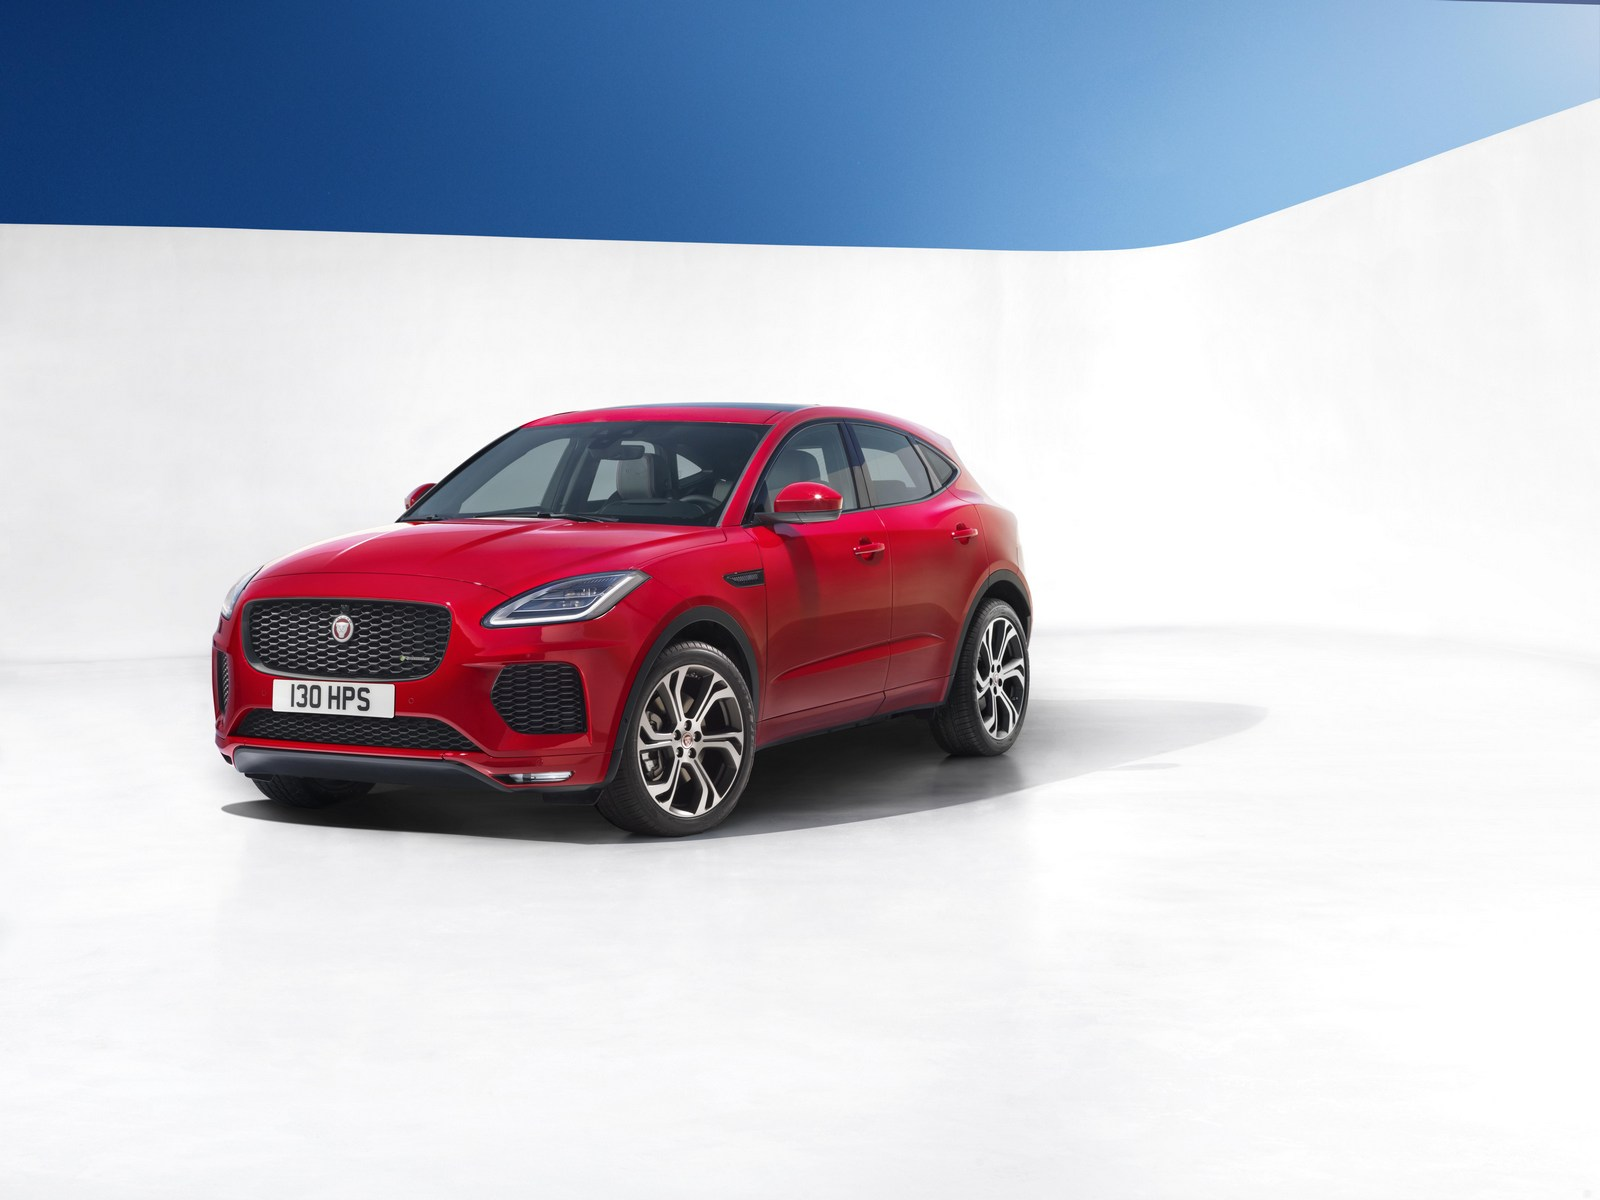 2018 jaguar e pace crossover revealed with a base price of under 40 000 the. Black Bedroom Furniture Sets. Home Design Ideas